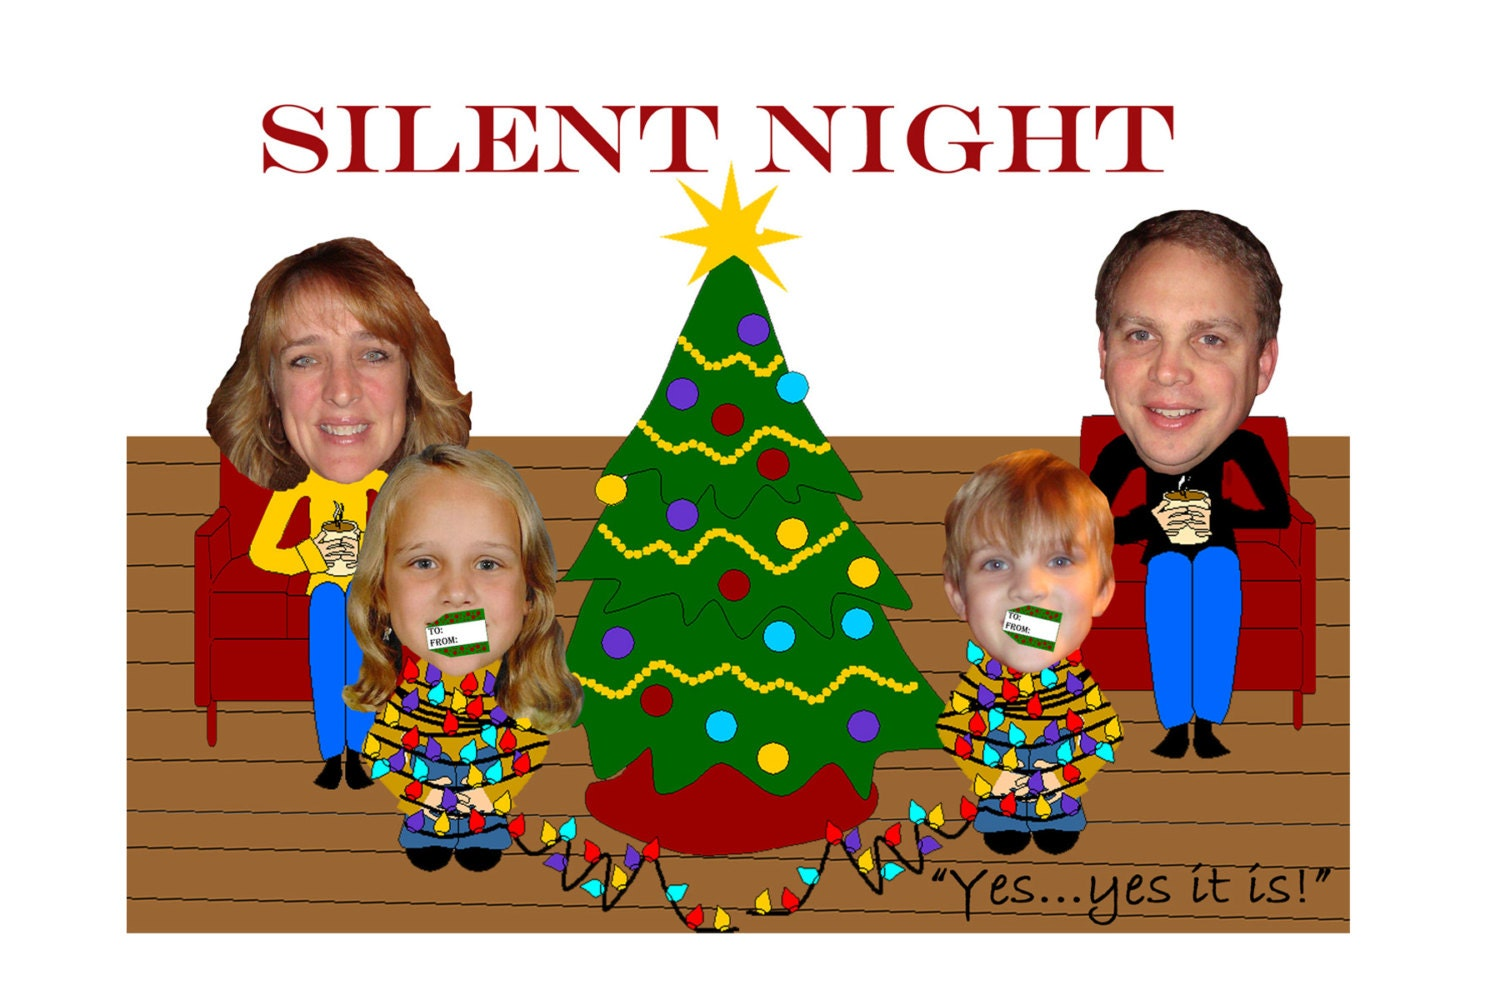 Unique christmas card silent night layout funny family for Unique family christmas cards